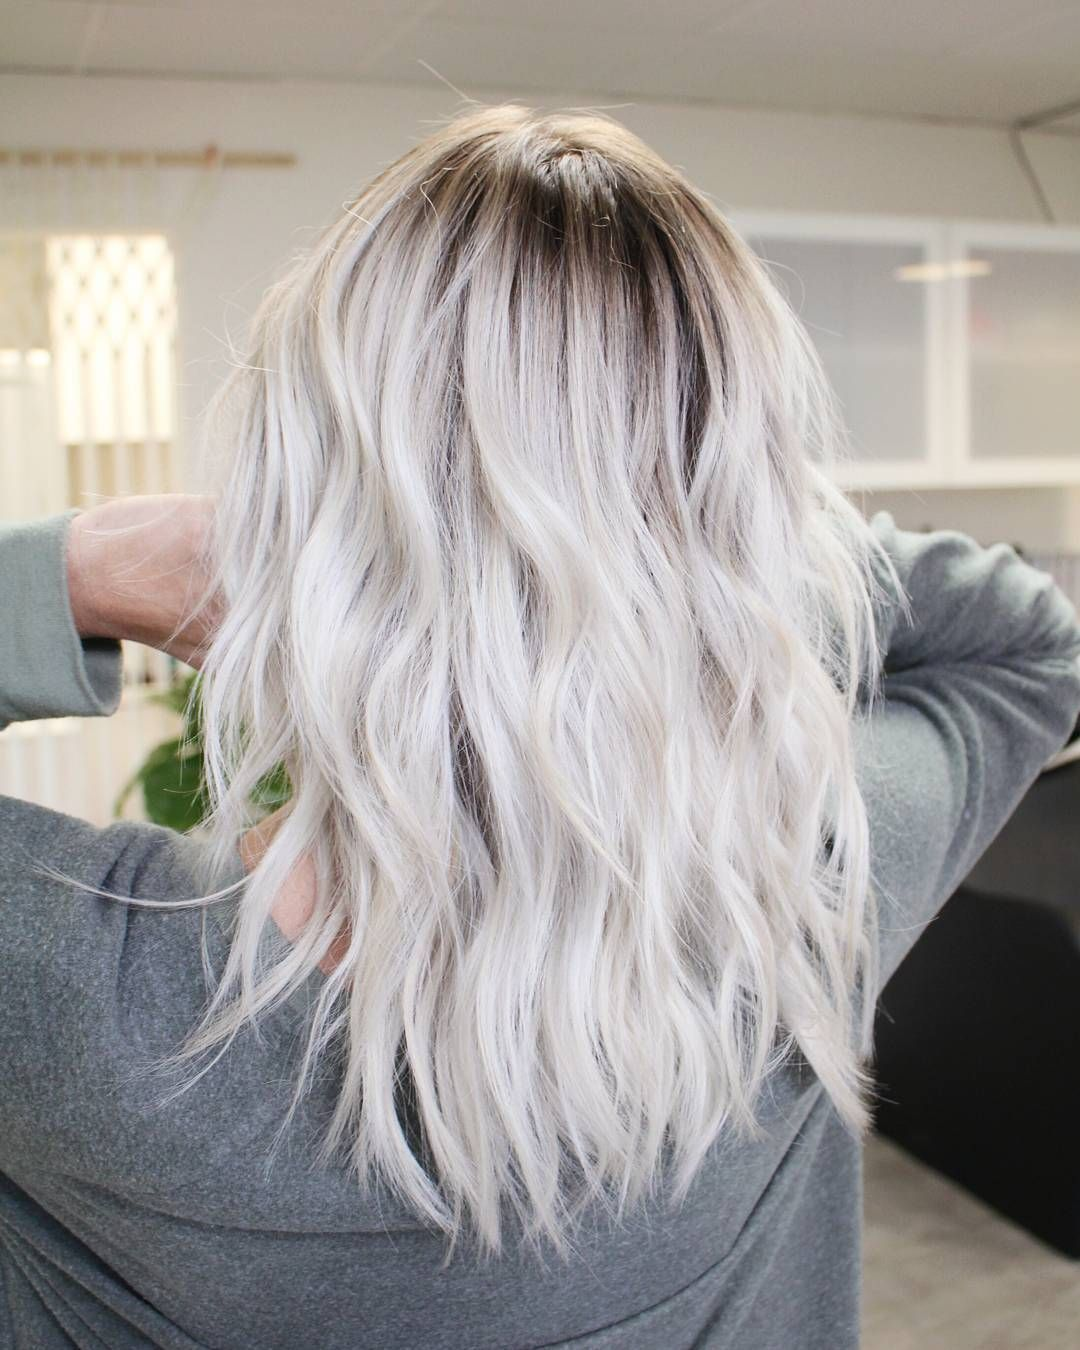 Watch The Best Long Hair Inspiration to Pin RightNow video